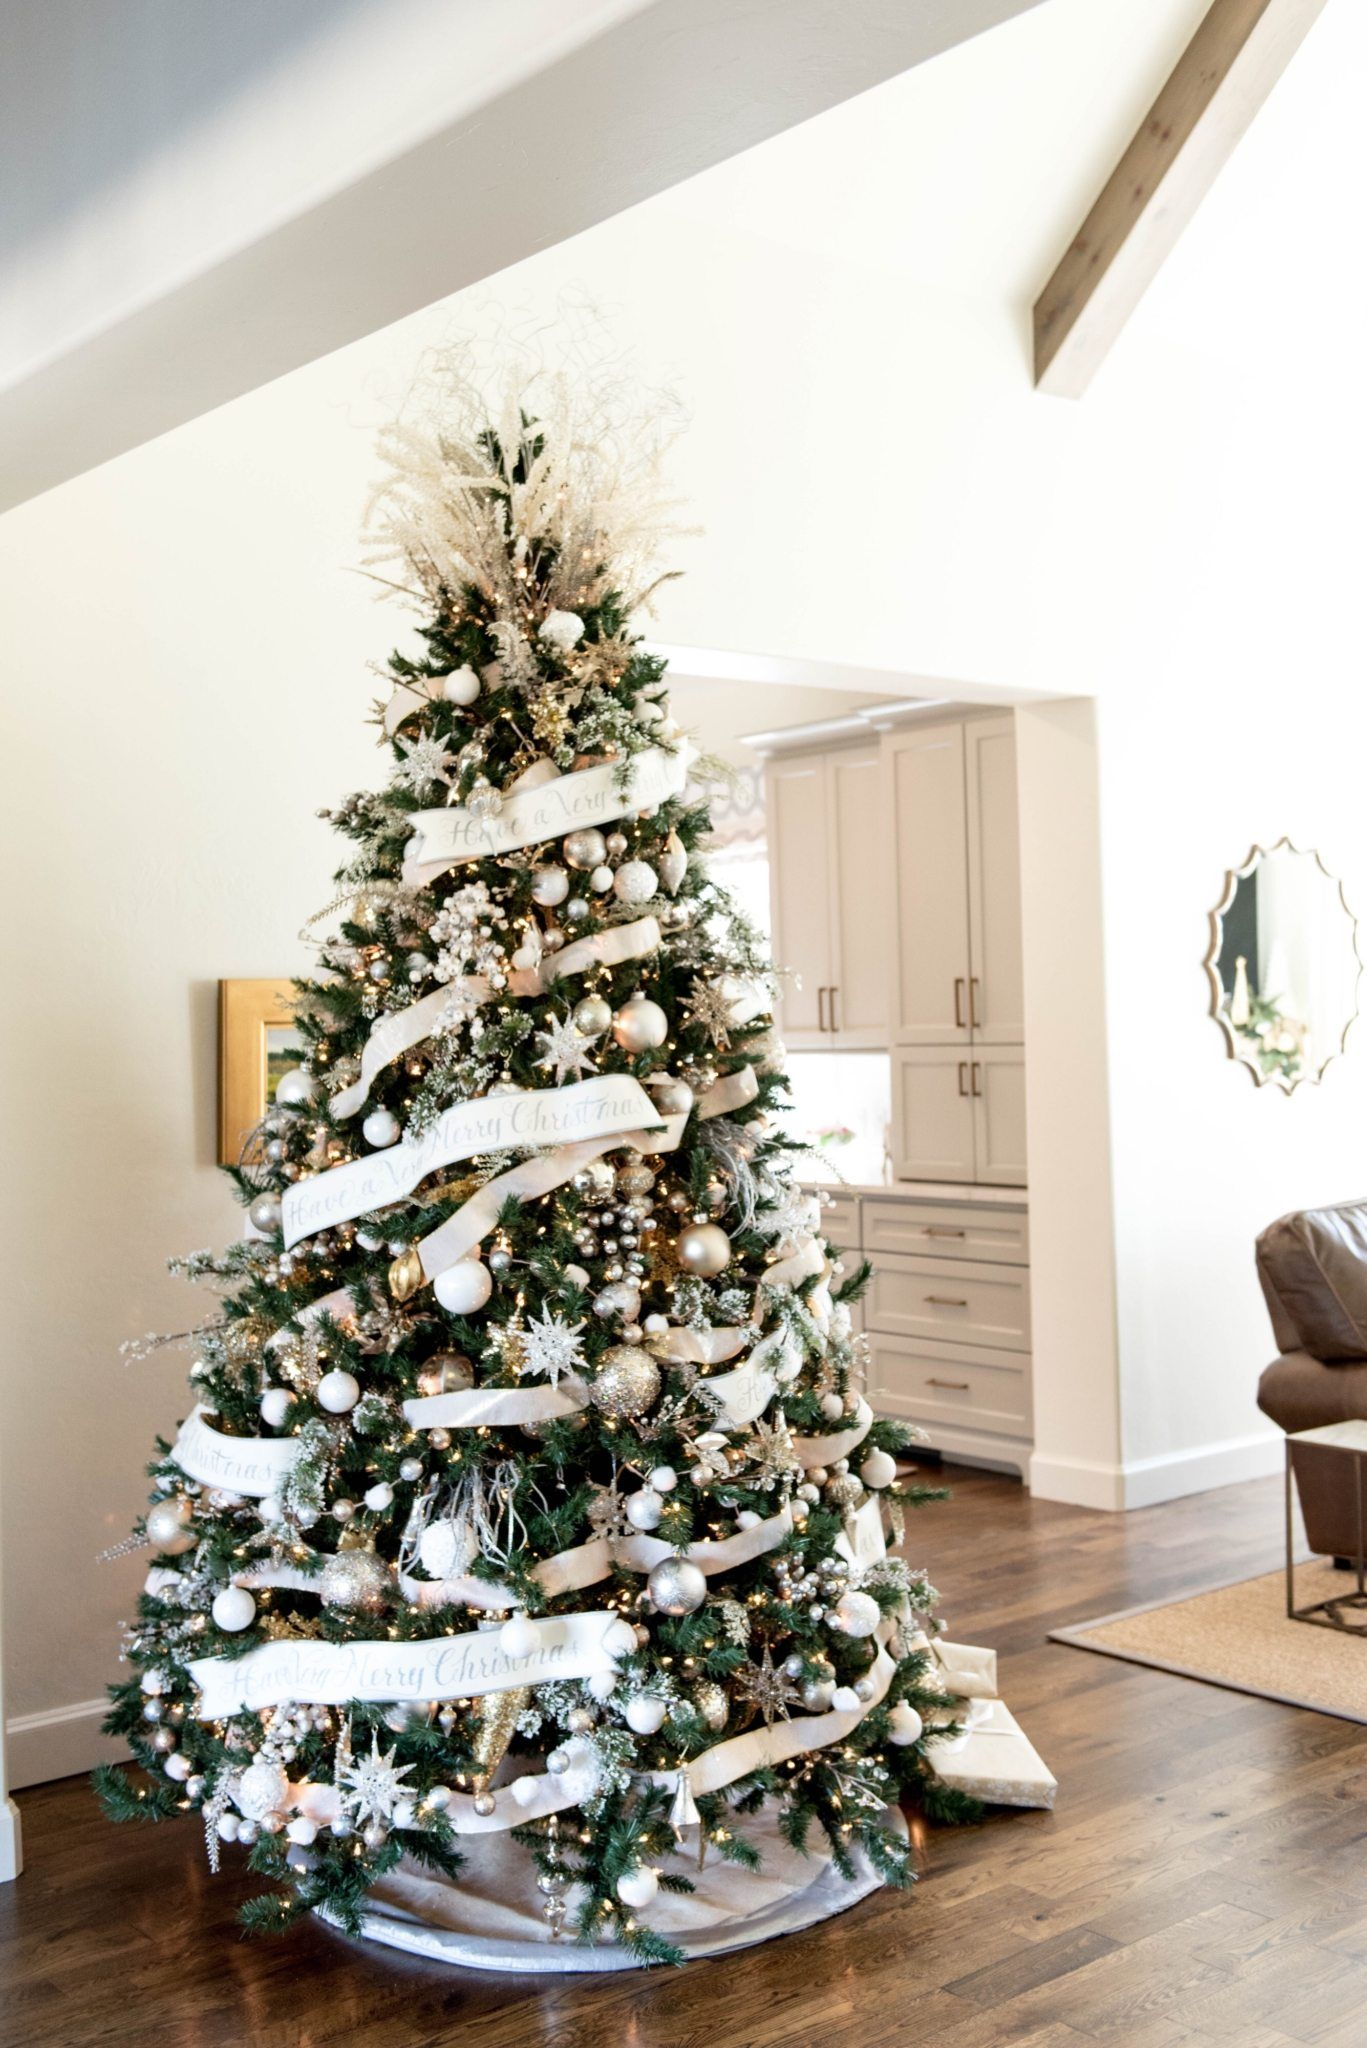 Glam Christmas Decor | Karácsony | Pinterest | Christmas tree ideas ...